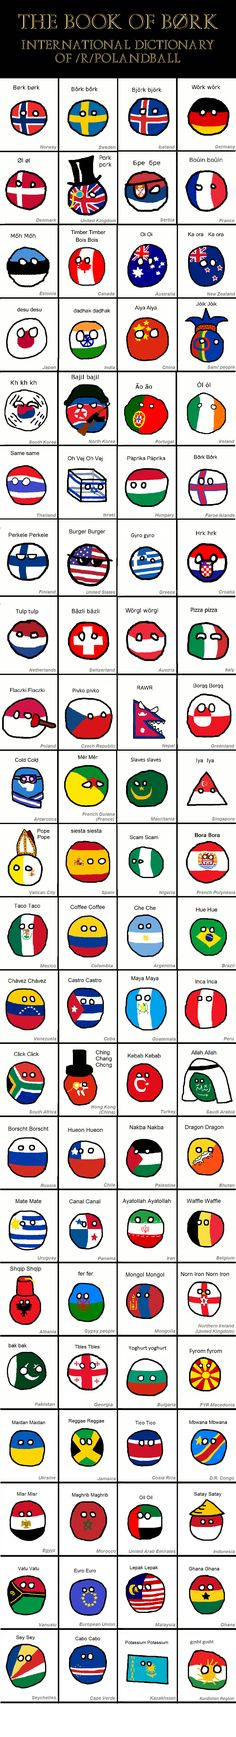 Book of Börk - Polandball Countries